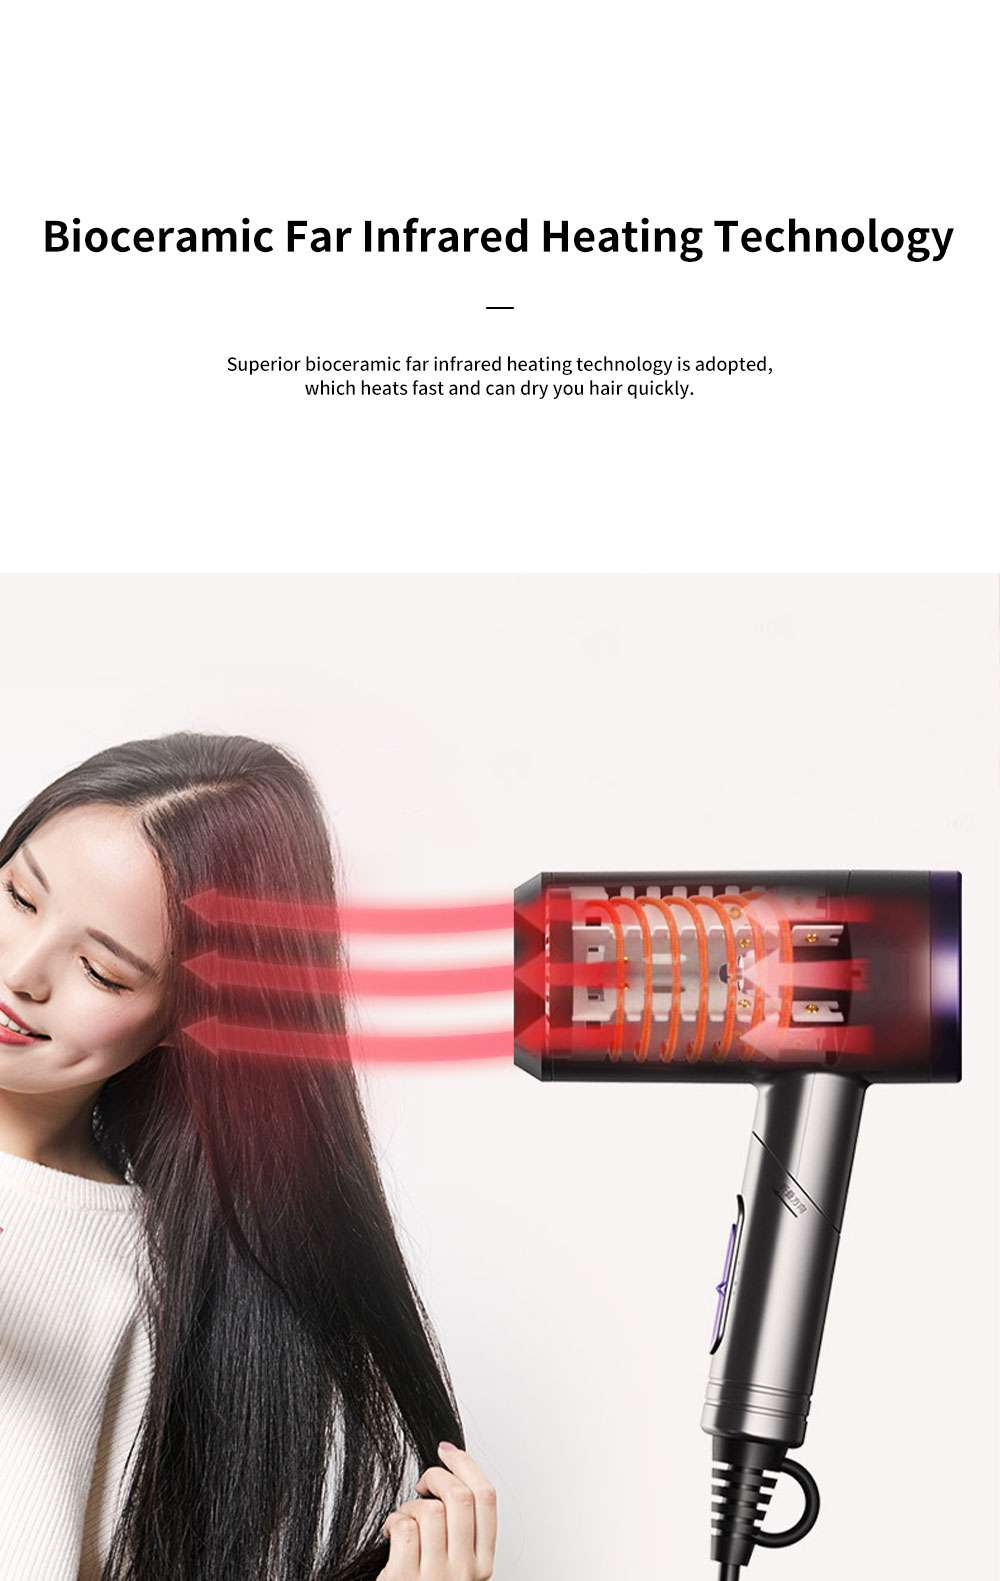 Minimalist Foldable Household Electric Har Dryer Low-Radiation Negative Ion Protection Bioceramic Far Infrared Heating Hair Dryer 1